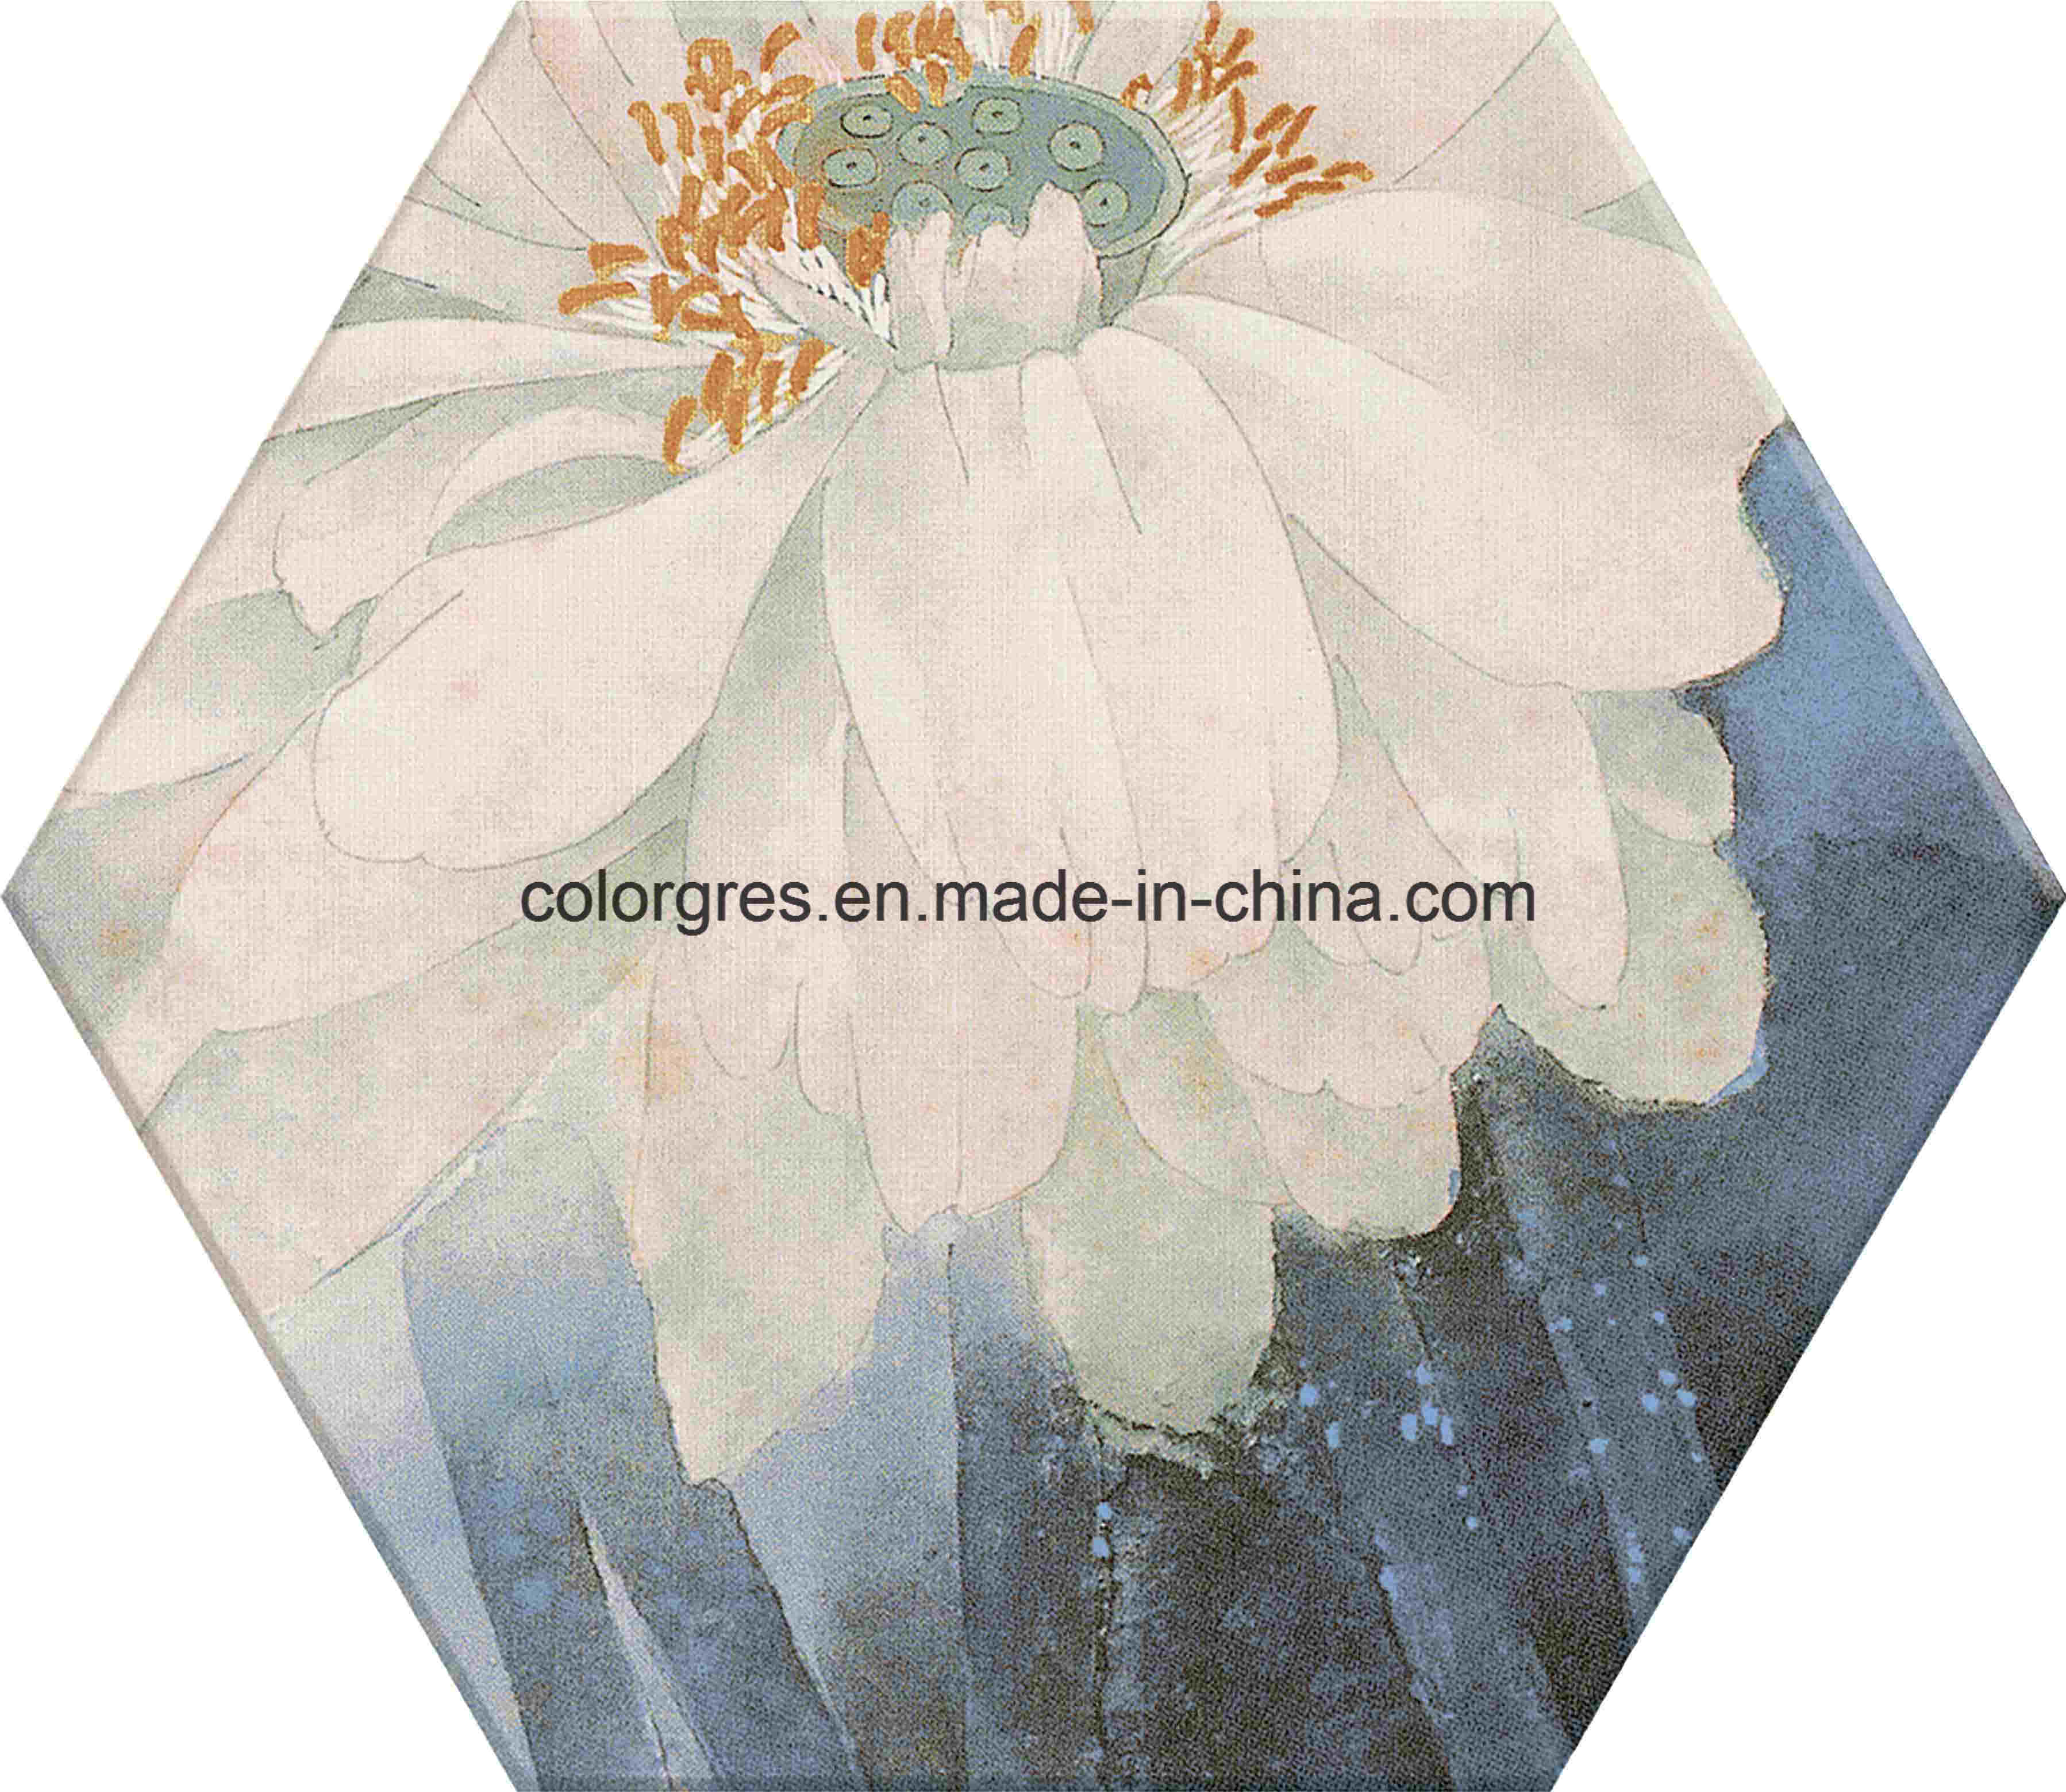 China garden decoration injected lotus flower design hexagon polygon garden decoration injected lotus flower design hexagon polygon ceramic floor tile 200230mm izmirmasajfo